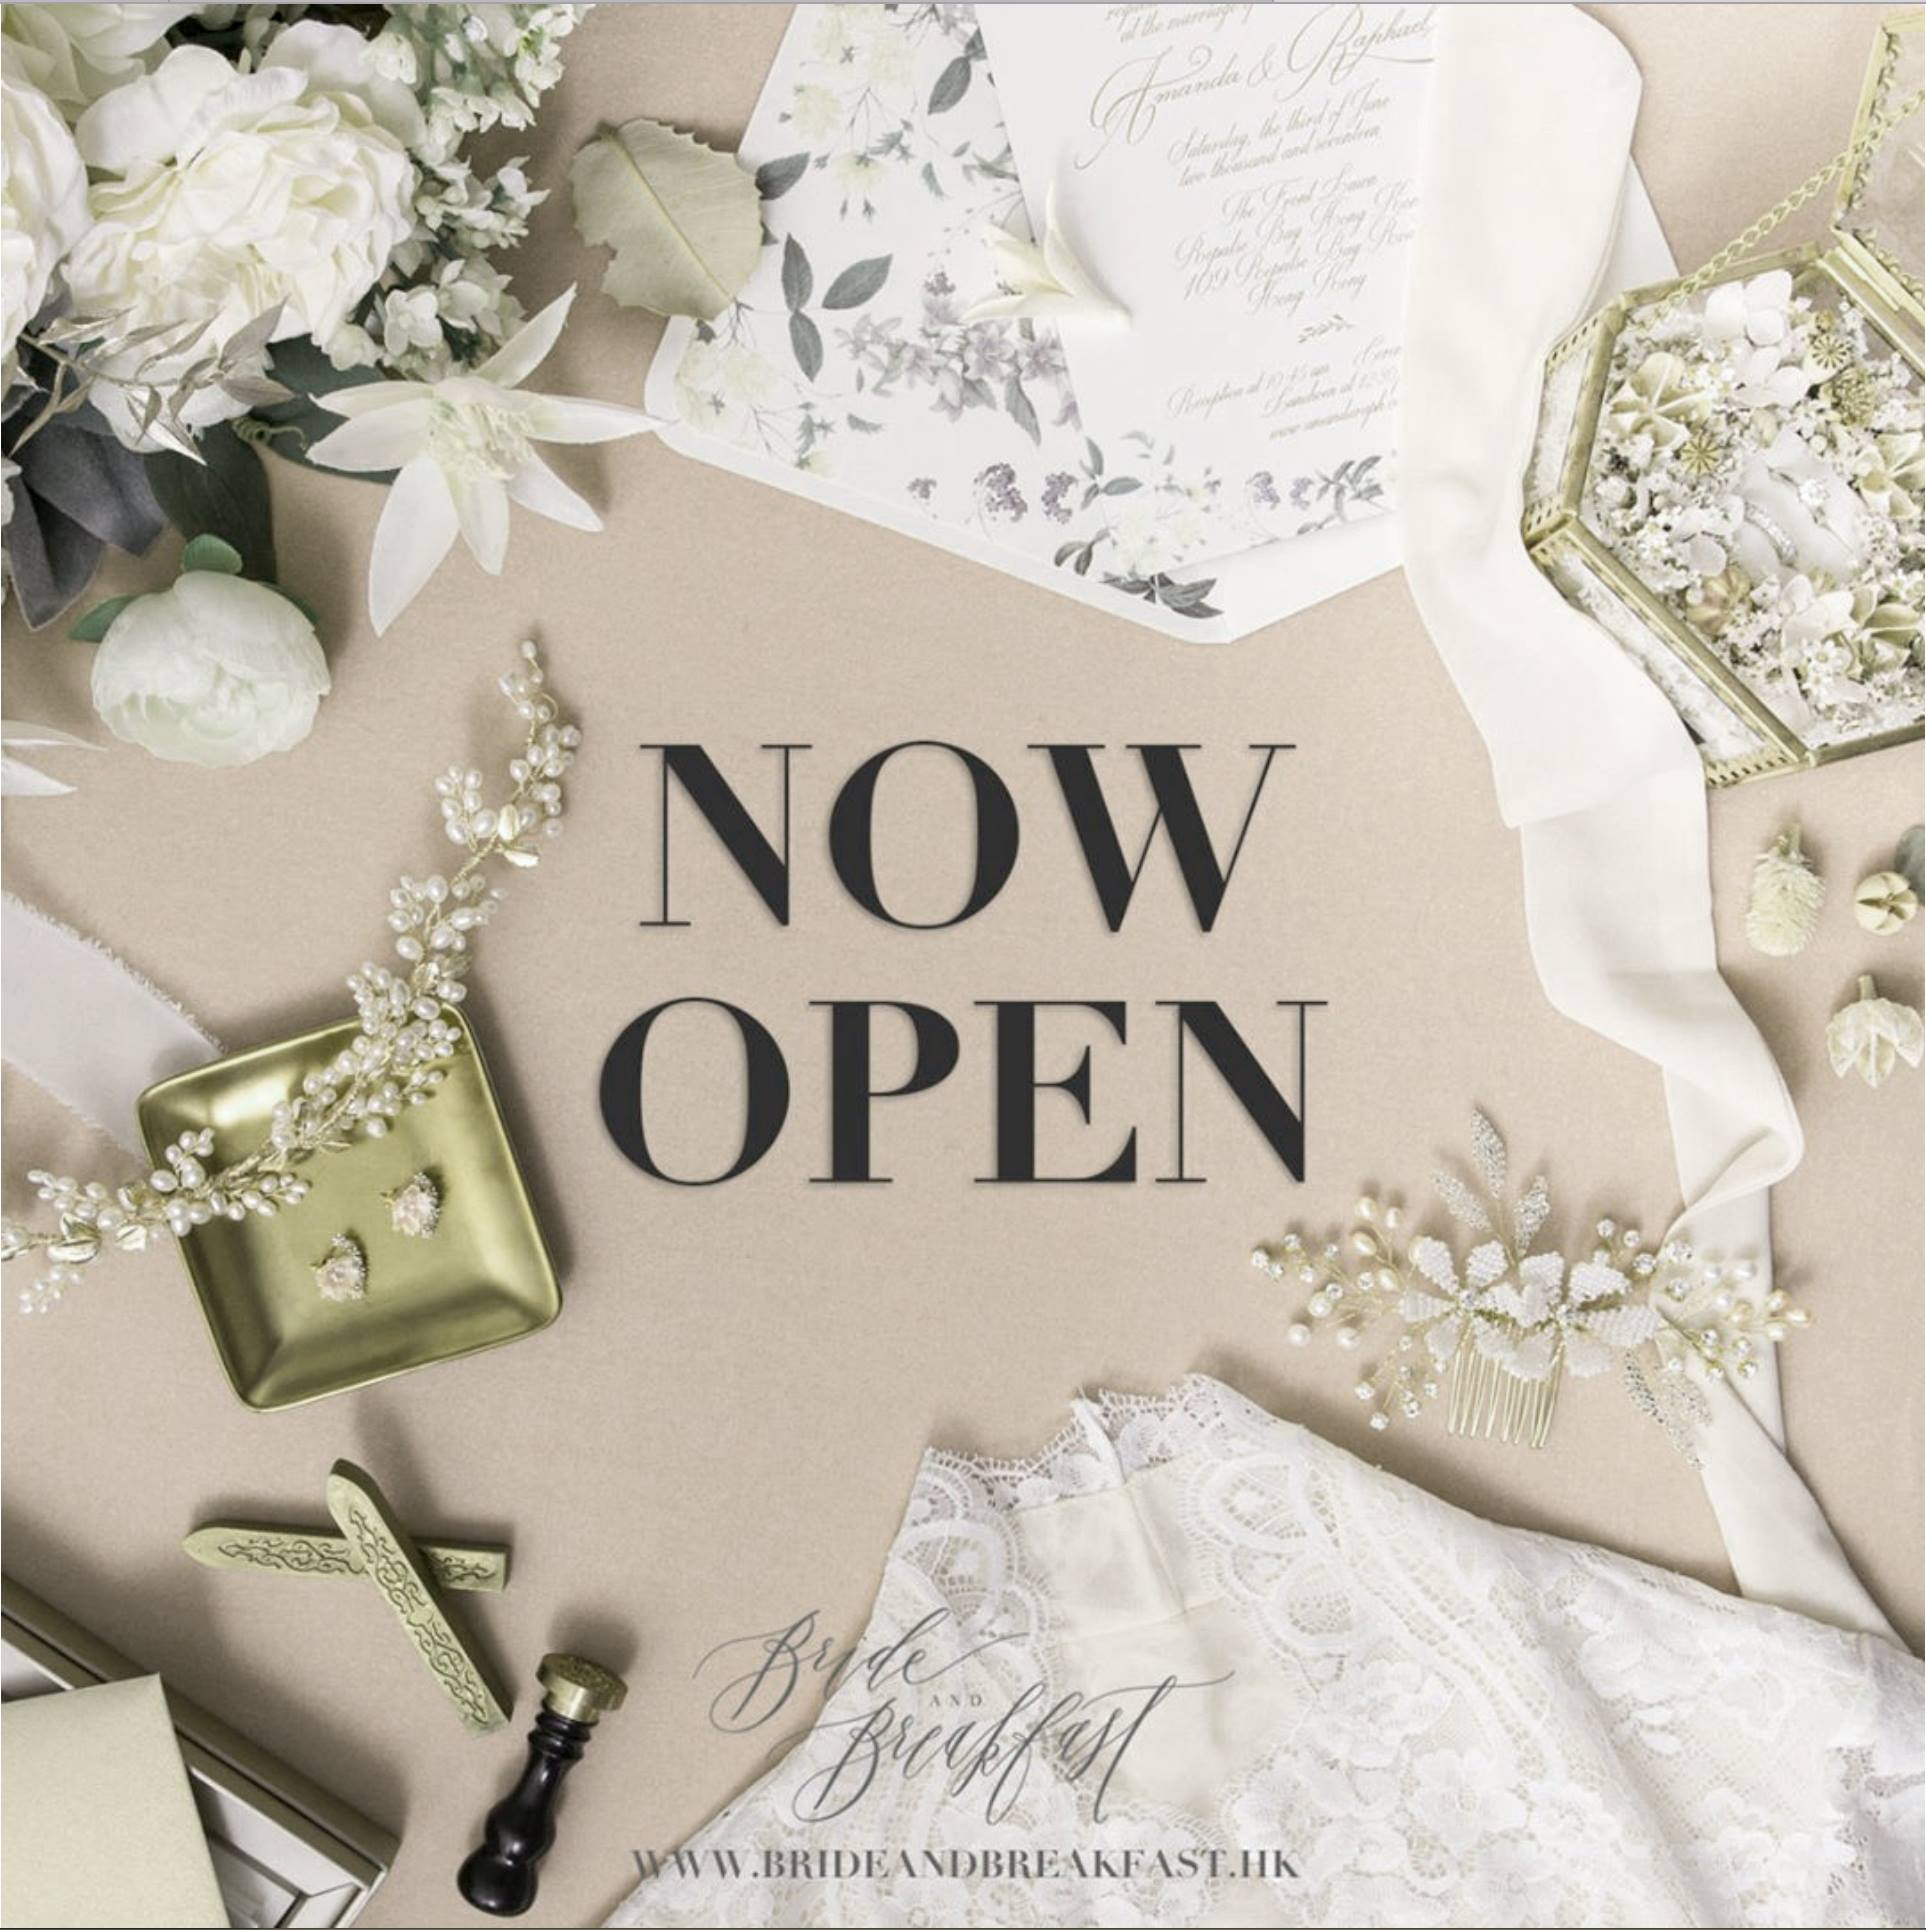 Now Open! Our Products are now available at Bride and Breakfast Hong Kong online shop